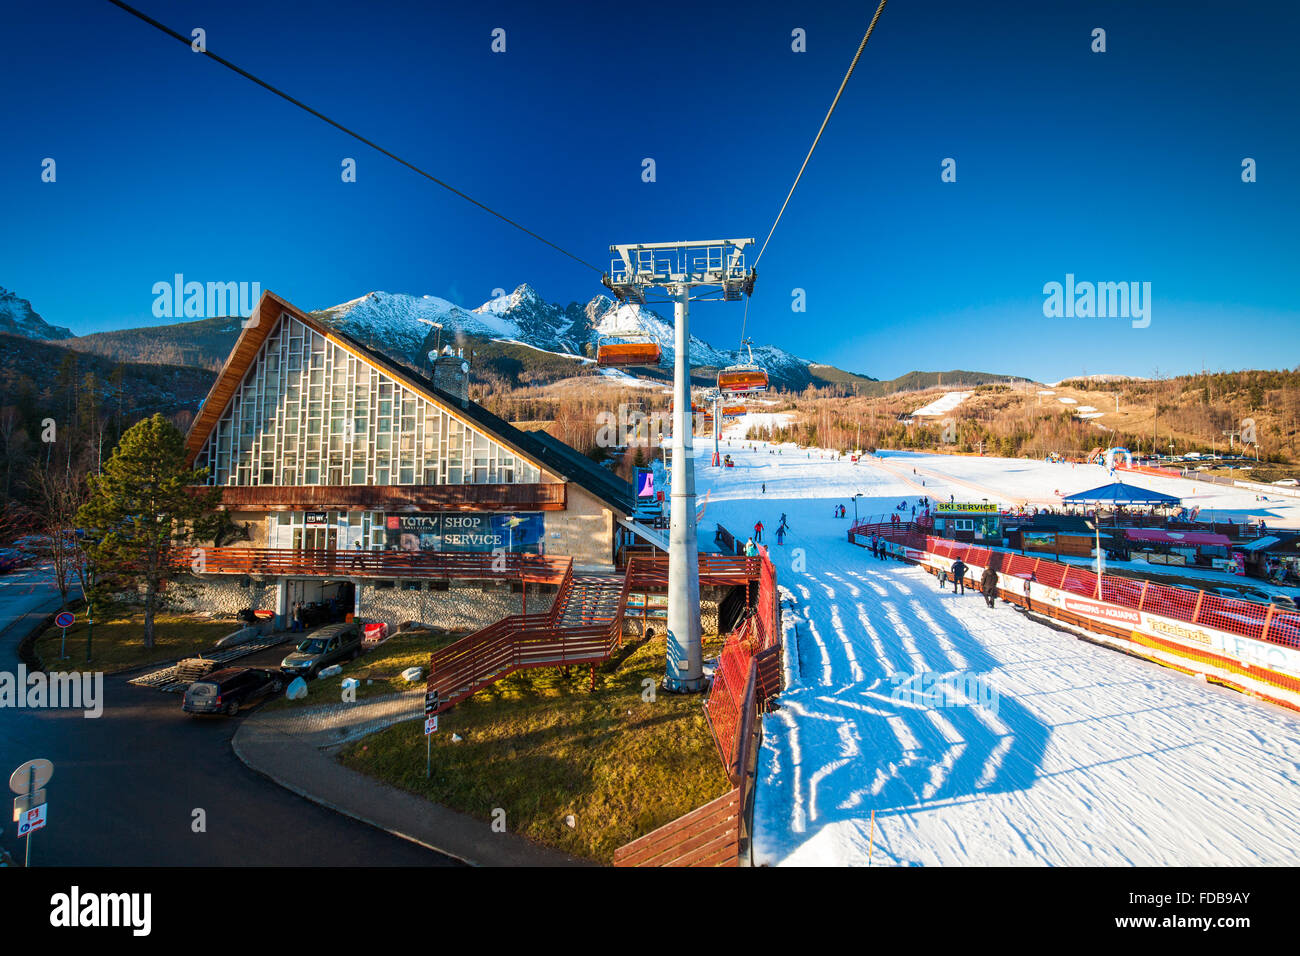 TATRANSKA LOMNICA, SLOVAKIA, 23 DEC 2015: Cable car at a popular ski resort in Tatranska Lomnica, High Tatras, with - Stock Image